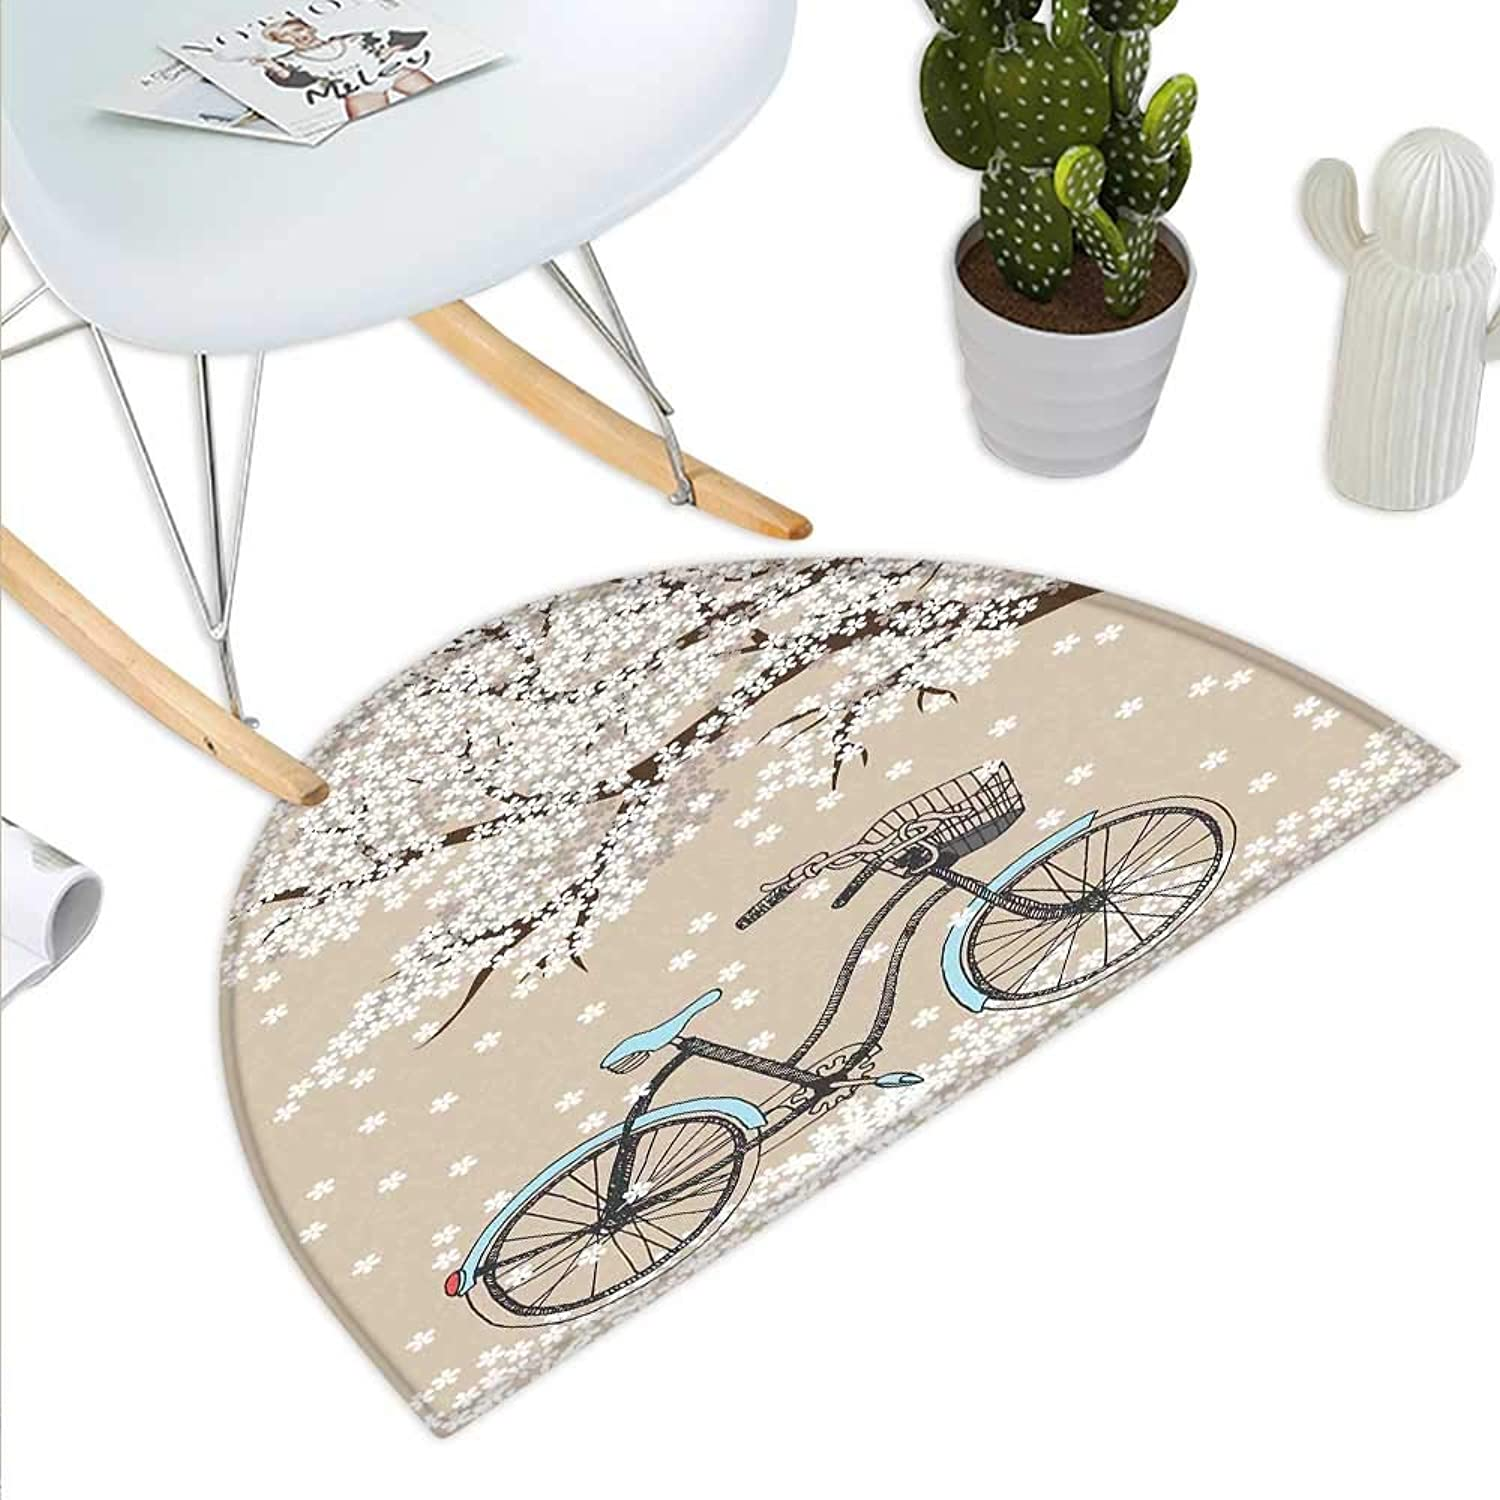 Bicycle Semicircle Doormat Blossoming Tree with Little White Flowers in The Spring and a Bike Sketch Artwork Halfmoon doormats H 43.3  xD 64.9  Multicolor